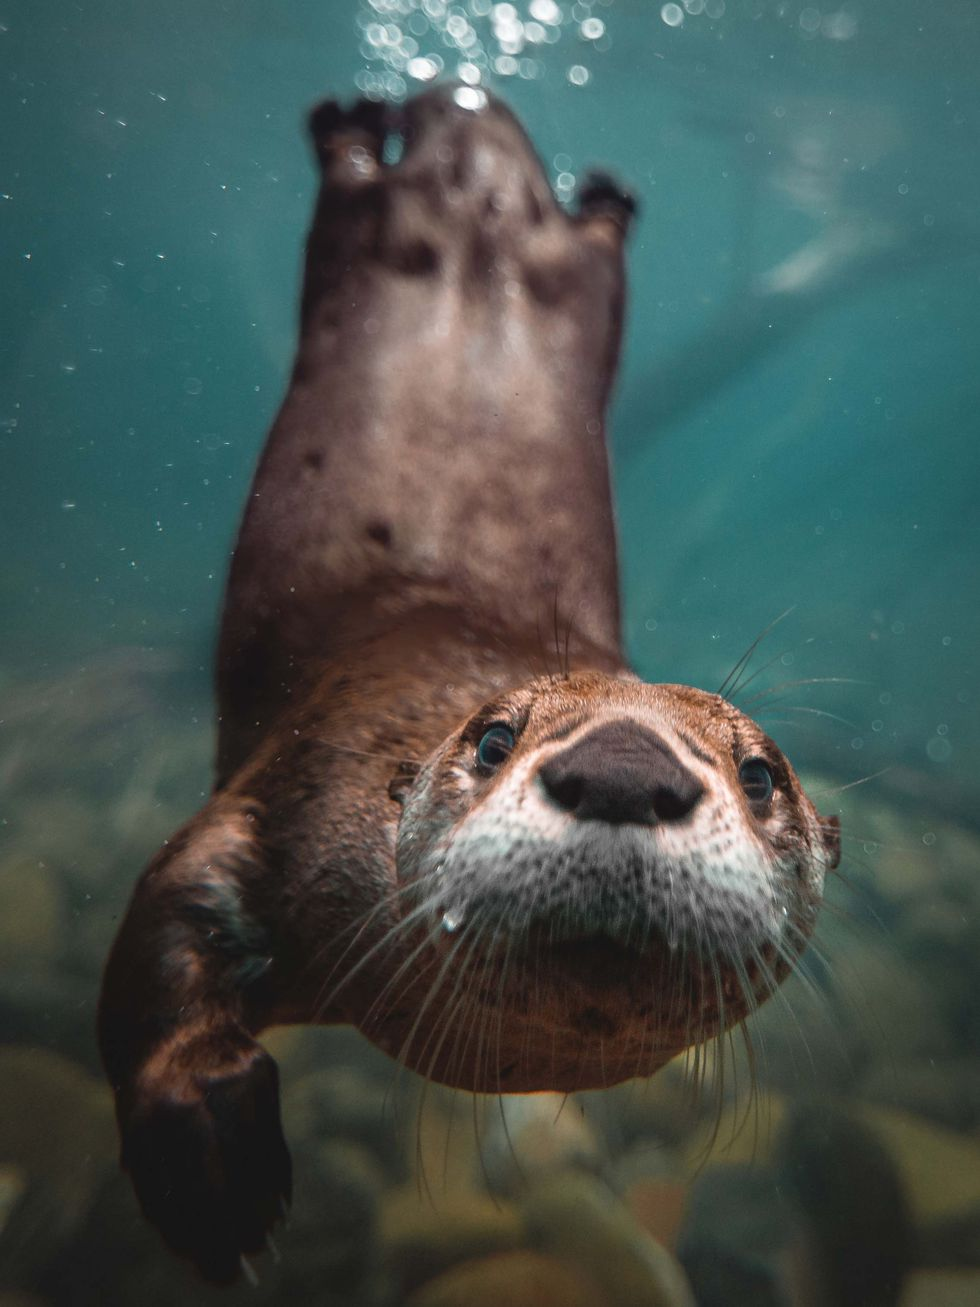 Toledo Zoo photographer Corey Wyckoff won a national award from the Association of Zoos and...